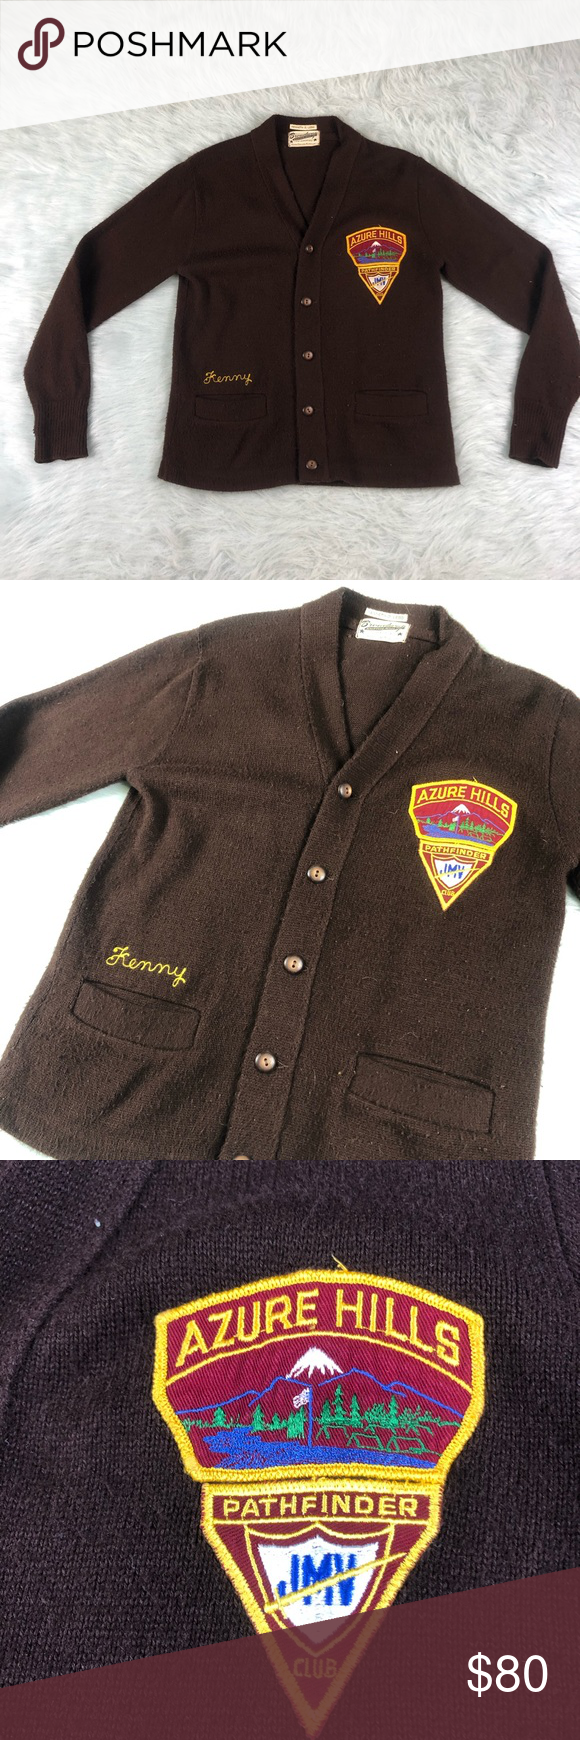 Vtg 50 S Jmv Pathfinders Club Broadway Knitting Unique Patch Button Sweater Knitting